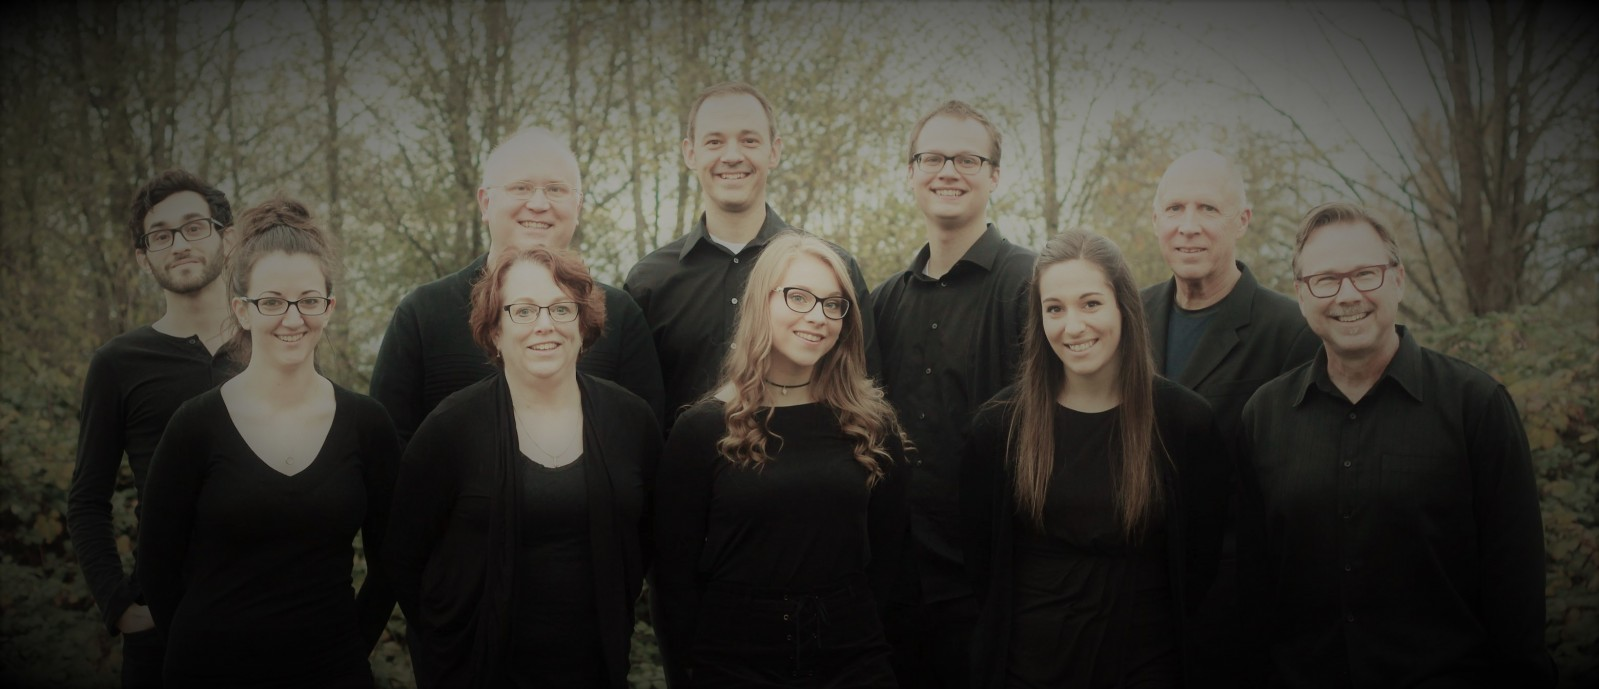 reSound, a Northwest Chamber Ensemble. reSound Fall 2016